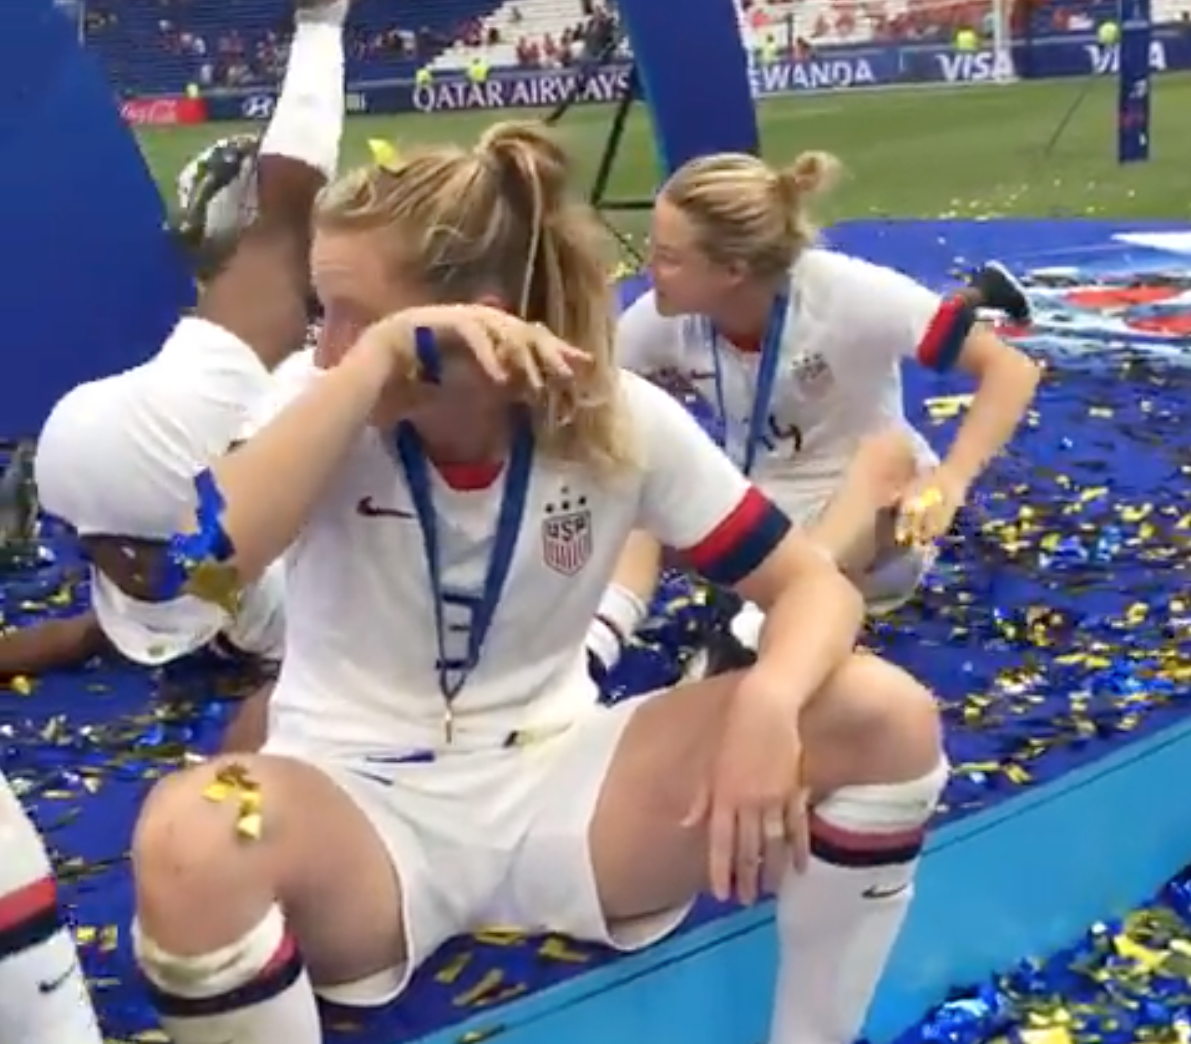 Women's World Cup Completely Arbitrary and Frivolous End-of-Tournament Awards